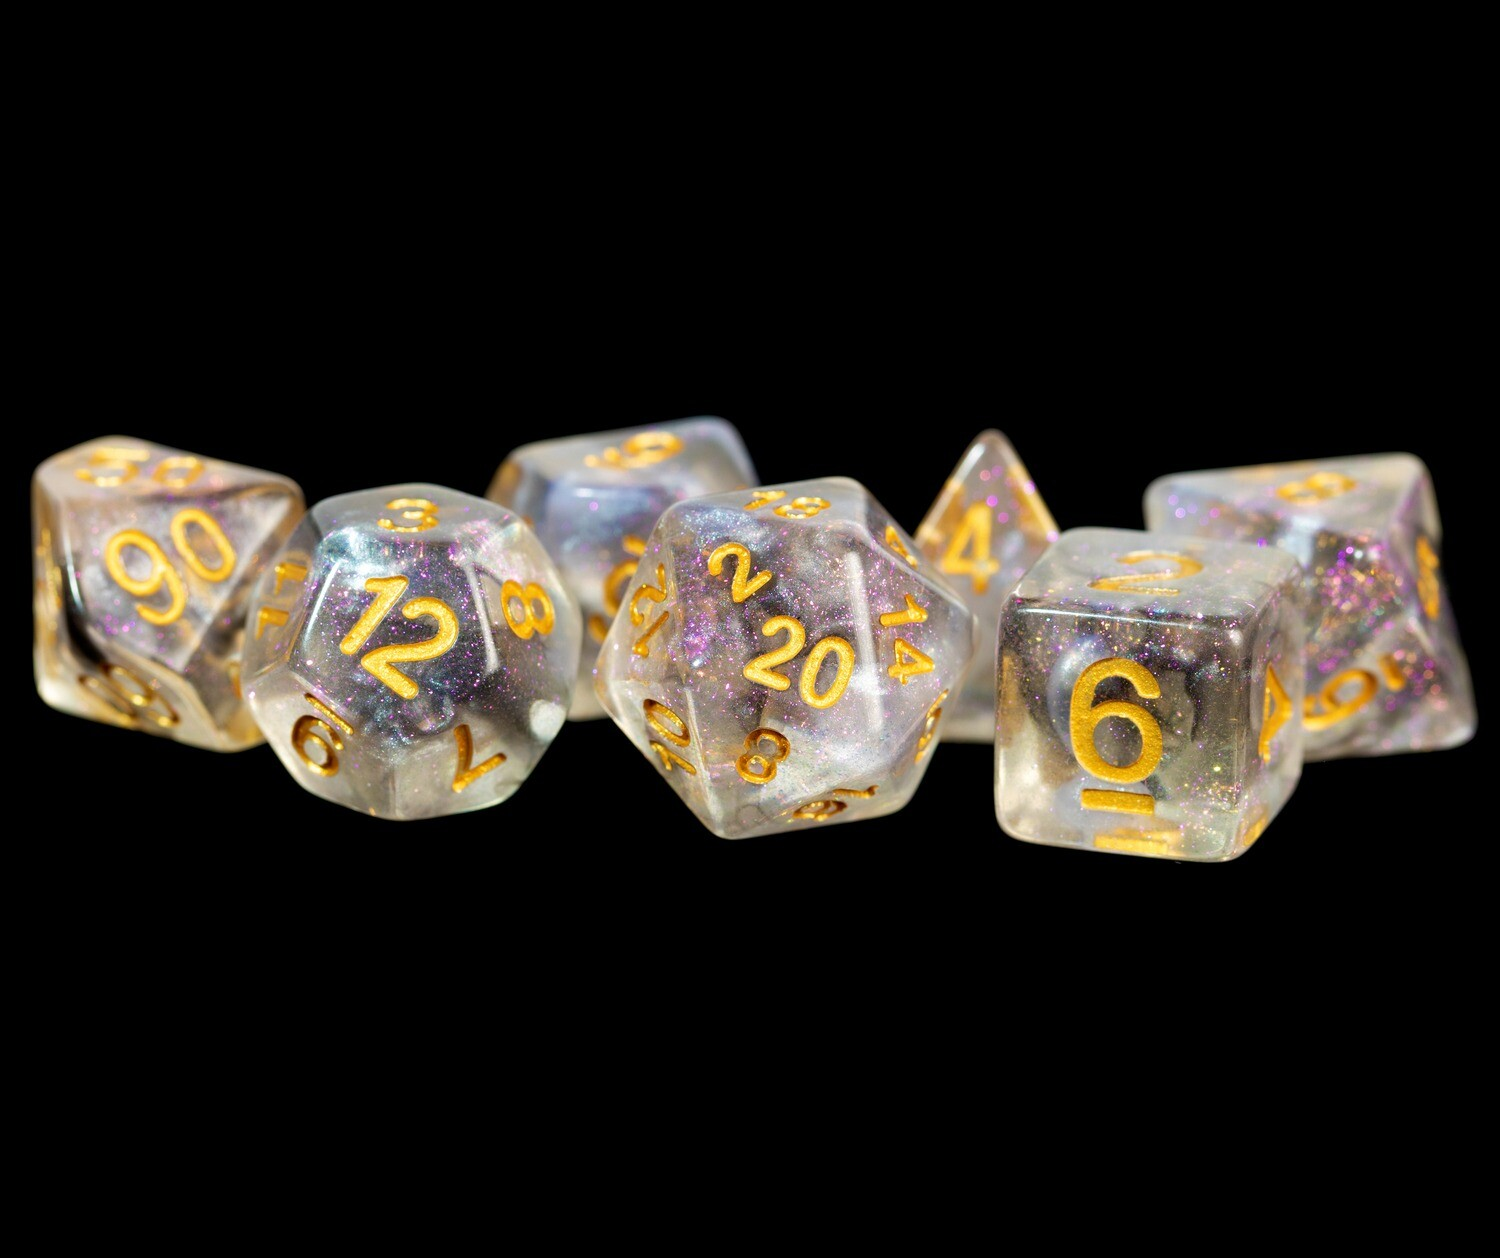 Purple Haze 16mm Resin Poly Dice Set 16mm Polyhedral Dice Set Tabletop RPG Gaming Roleplay